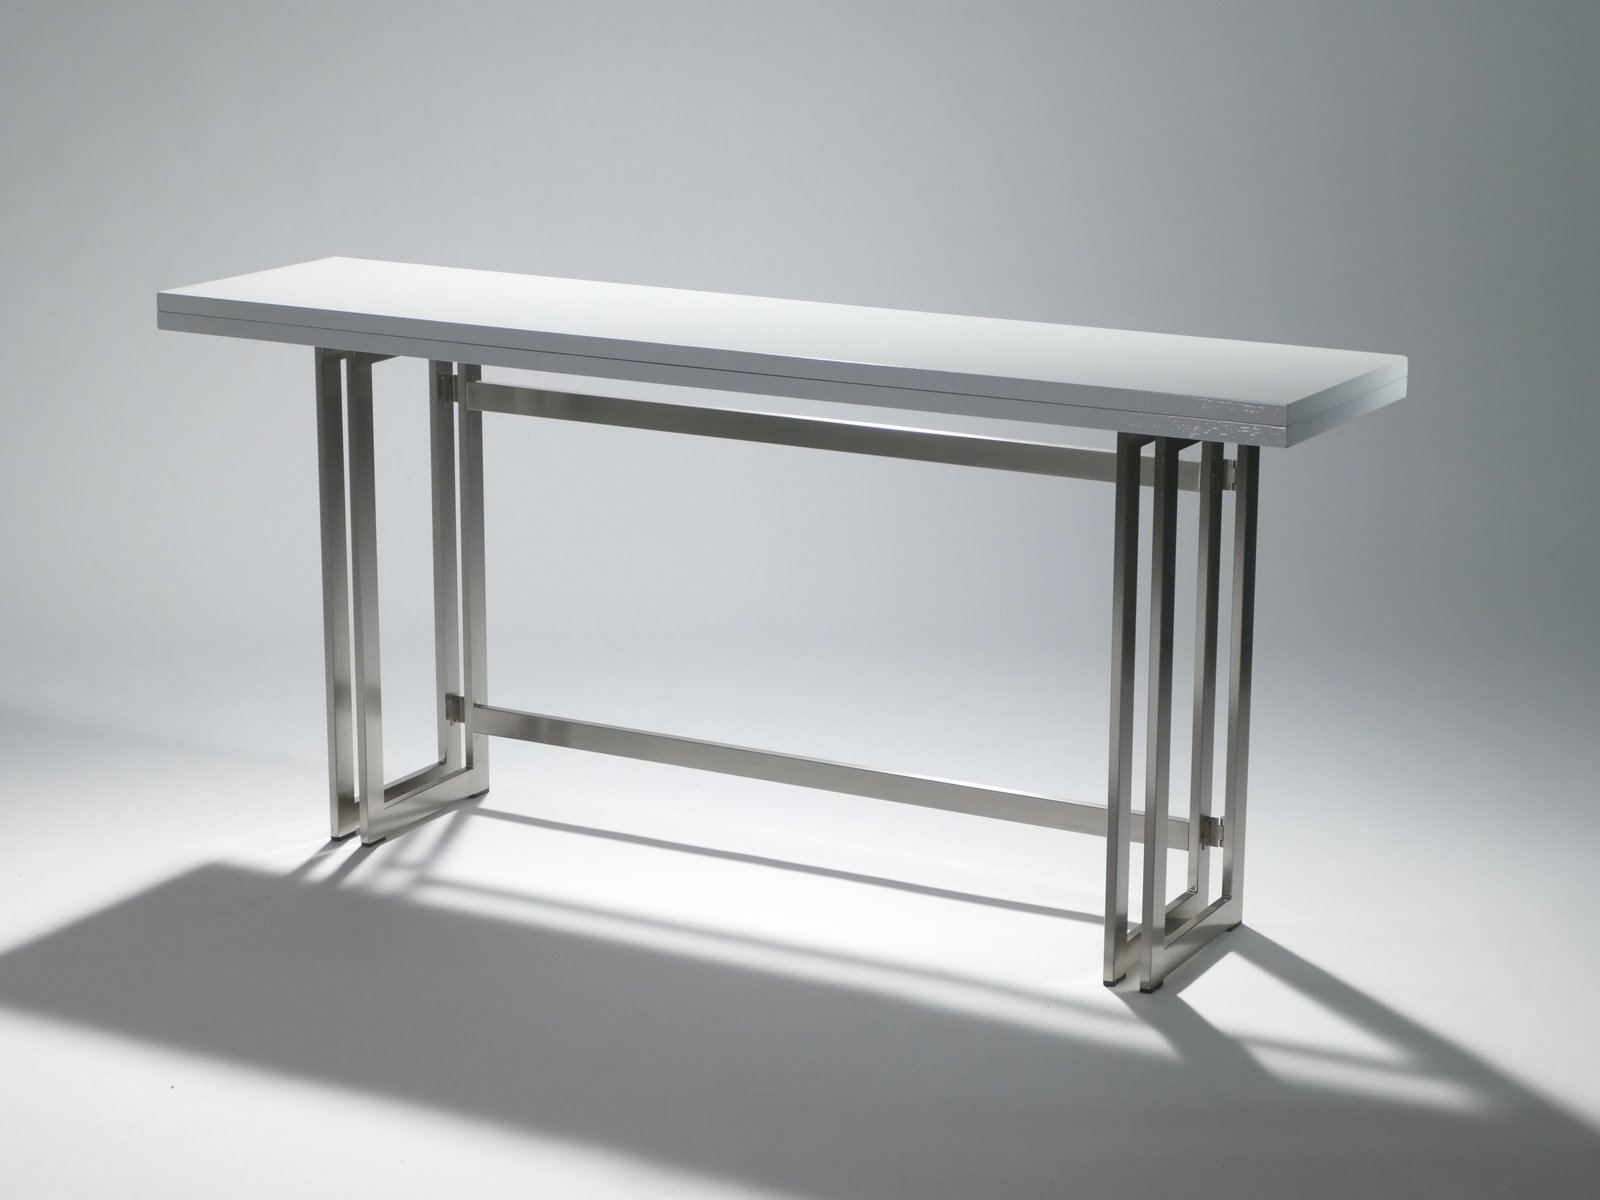 Mid Century Italian Large Lacquered Console Table By Artelano, 1970s